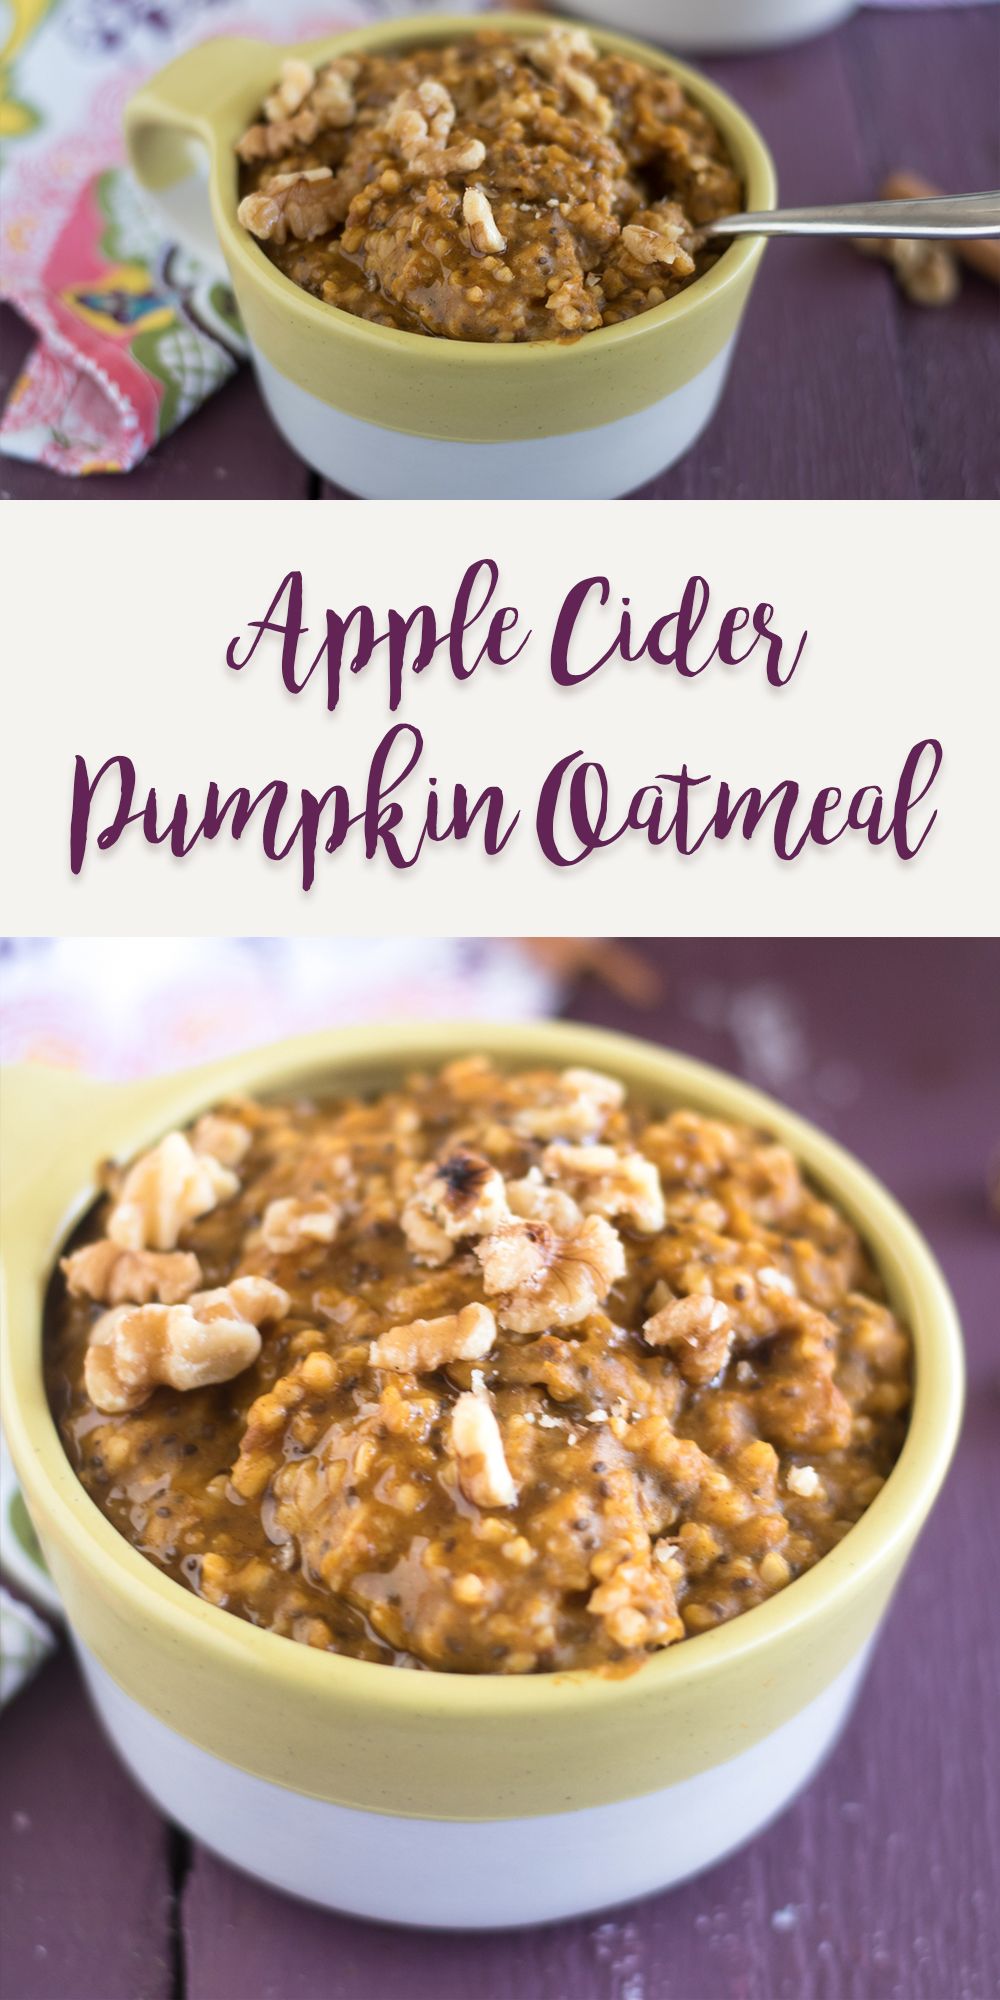 Apple Cider Pumpkin Oatmeal is made right in the slow cooker for an easy breakfast. Great for meal prepping too! #vegan #fall #recipe #breakfast #slowcooker